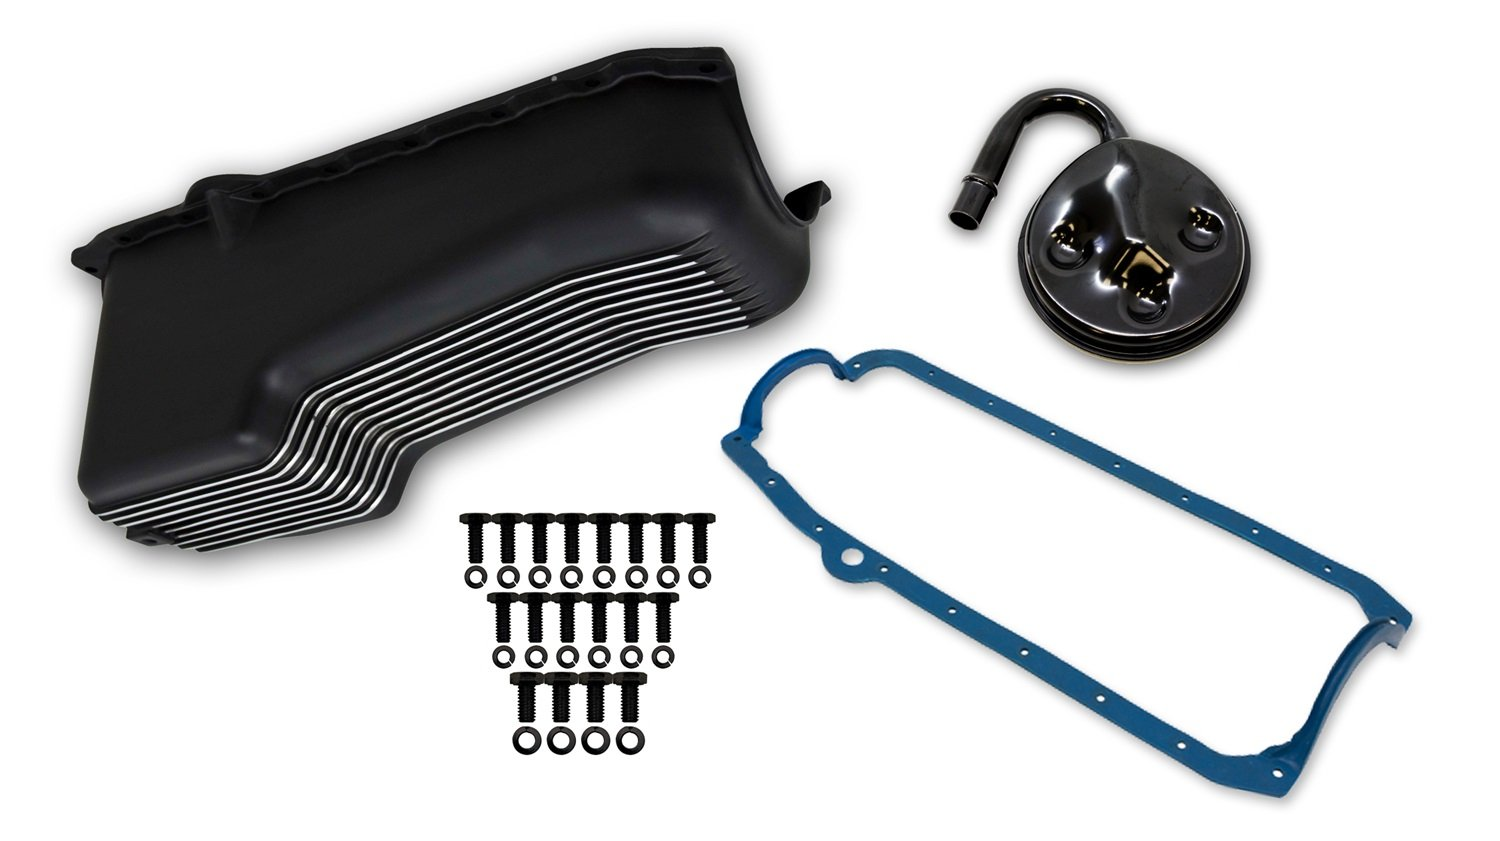 Oil Pan//Gasket//Pump Pickup//Hardware Black Finish Aluminum Oil Pan Kit Weiand 6002FWND Aluminum Oil Pan Kit 4 Quart Finned Aluminum Incl